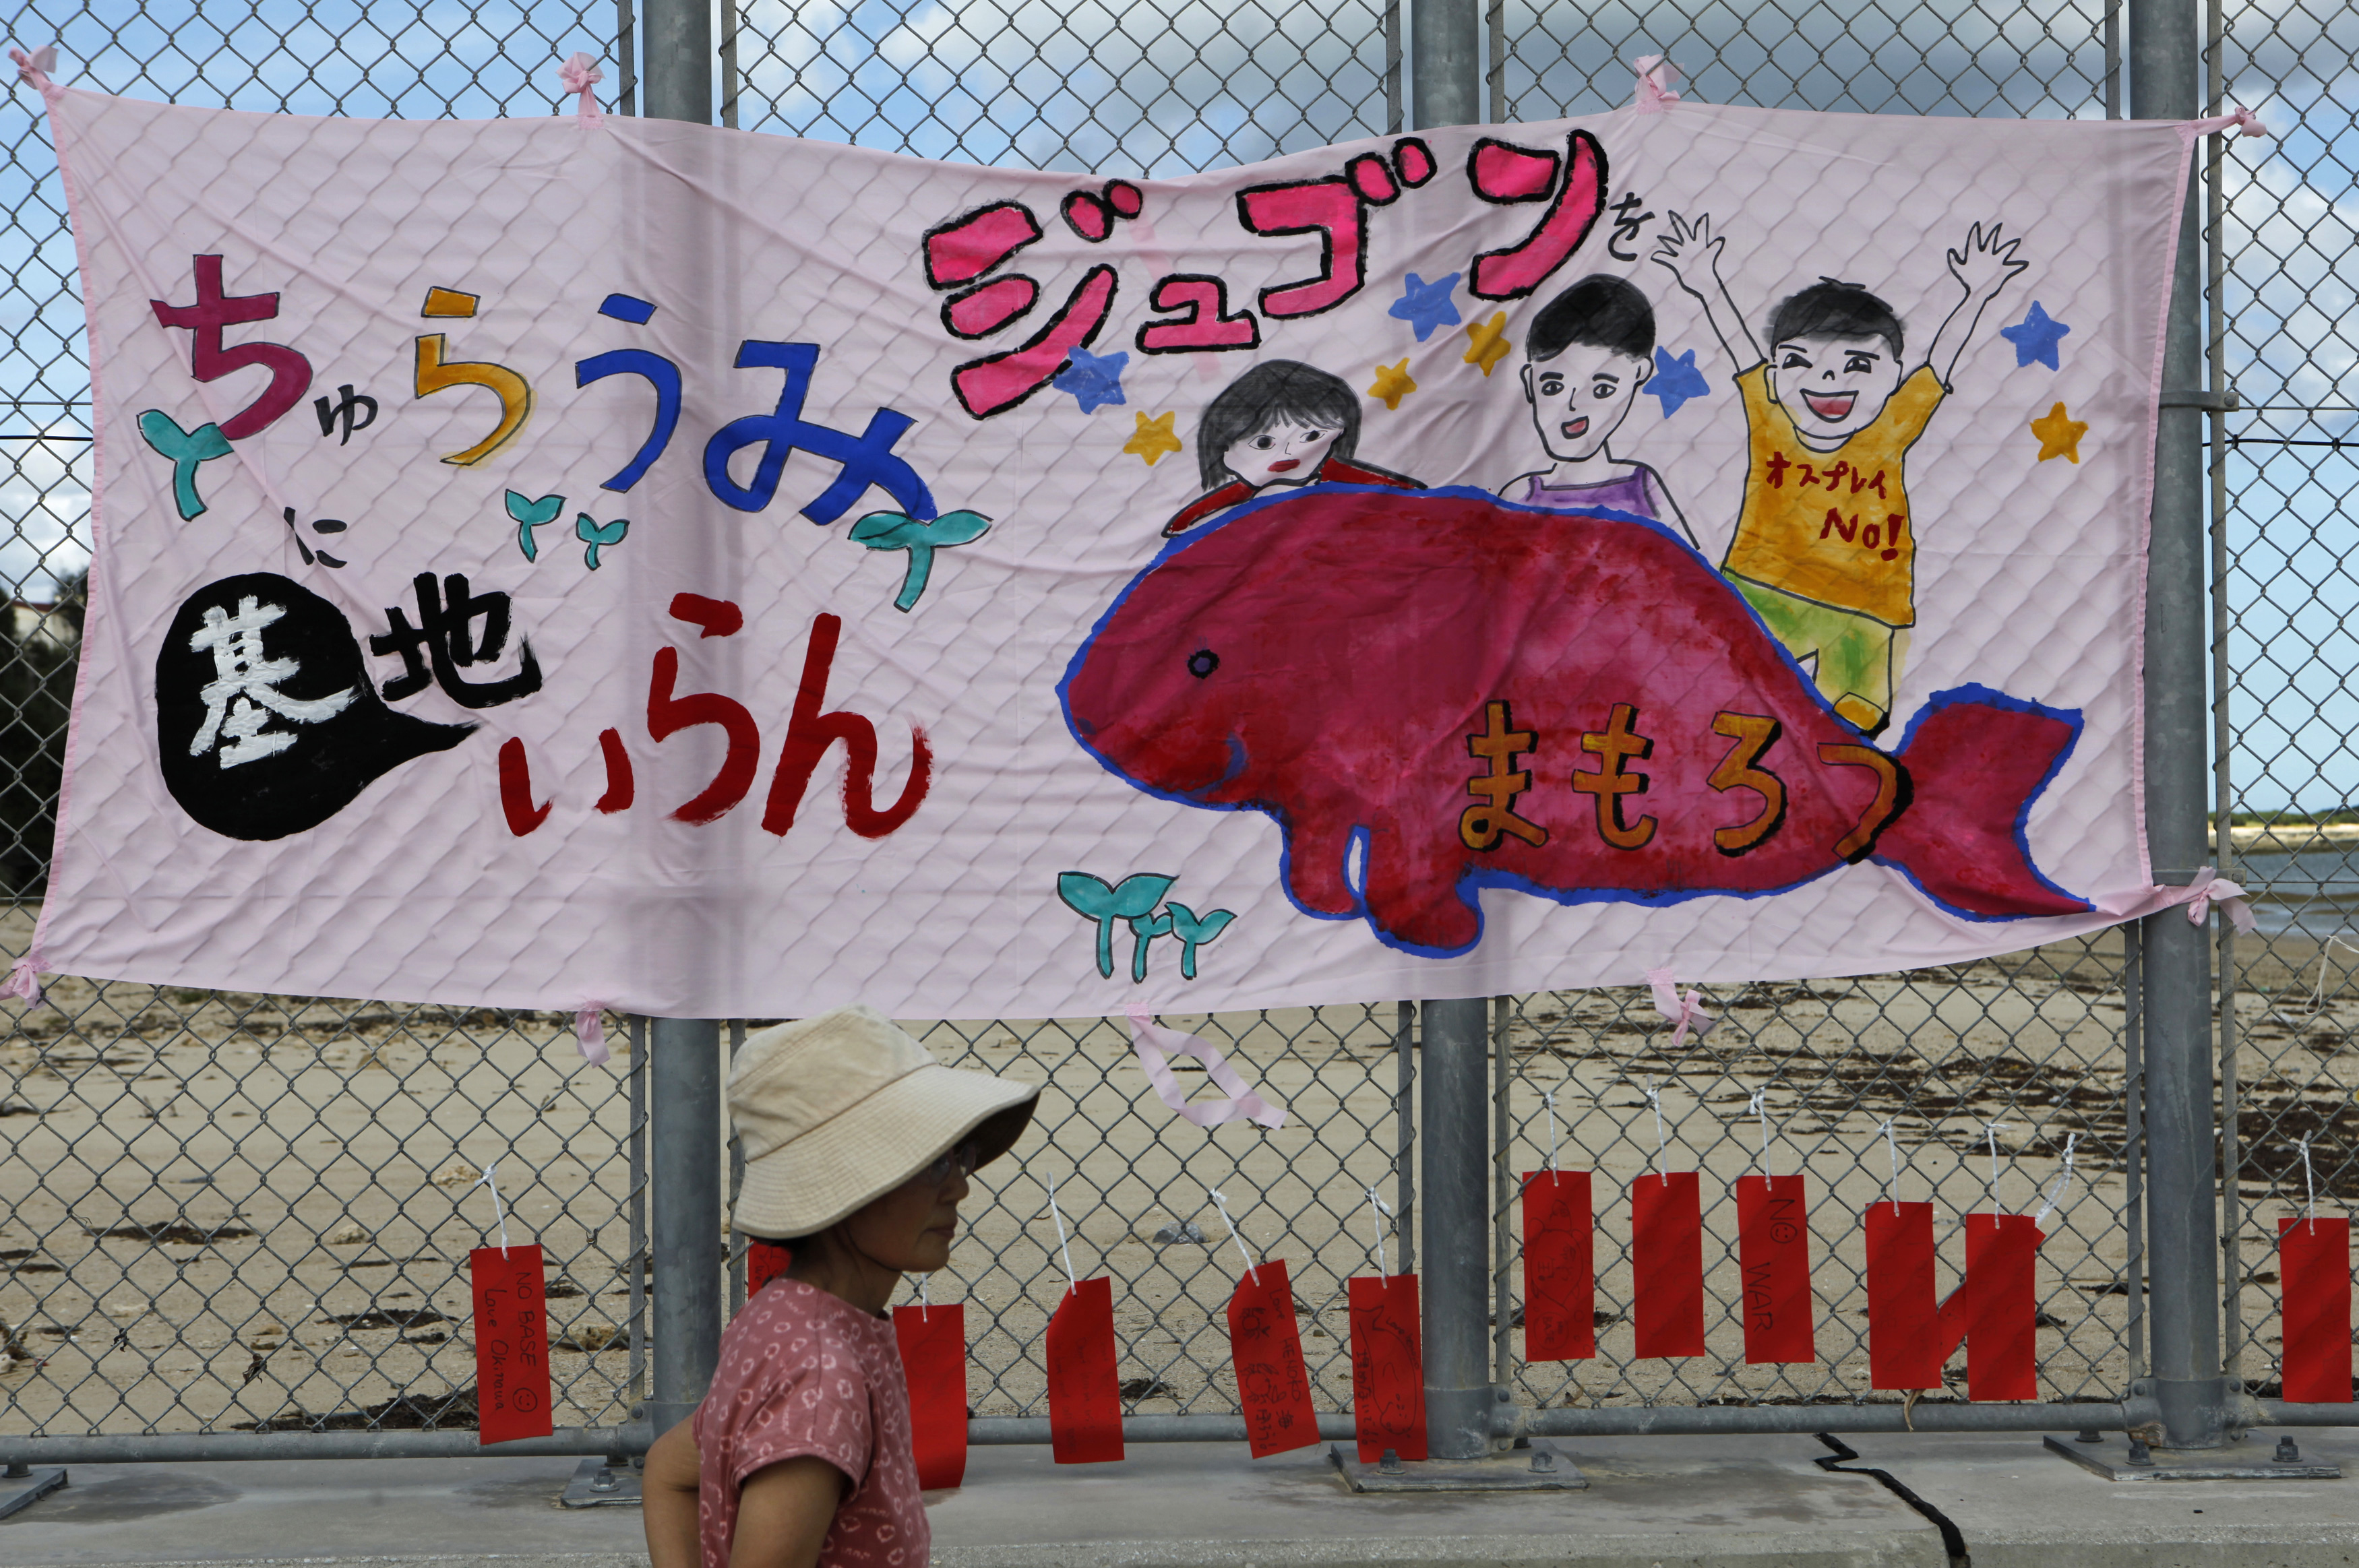 A hand-painted sign of children asking to protect the Henoko bay habitat to protect the Okinawa dugong.